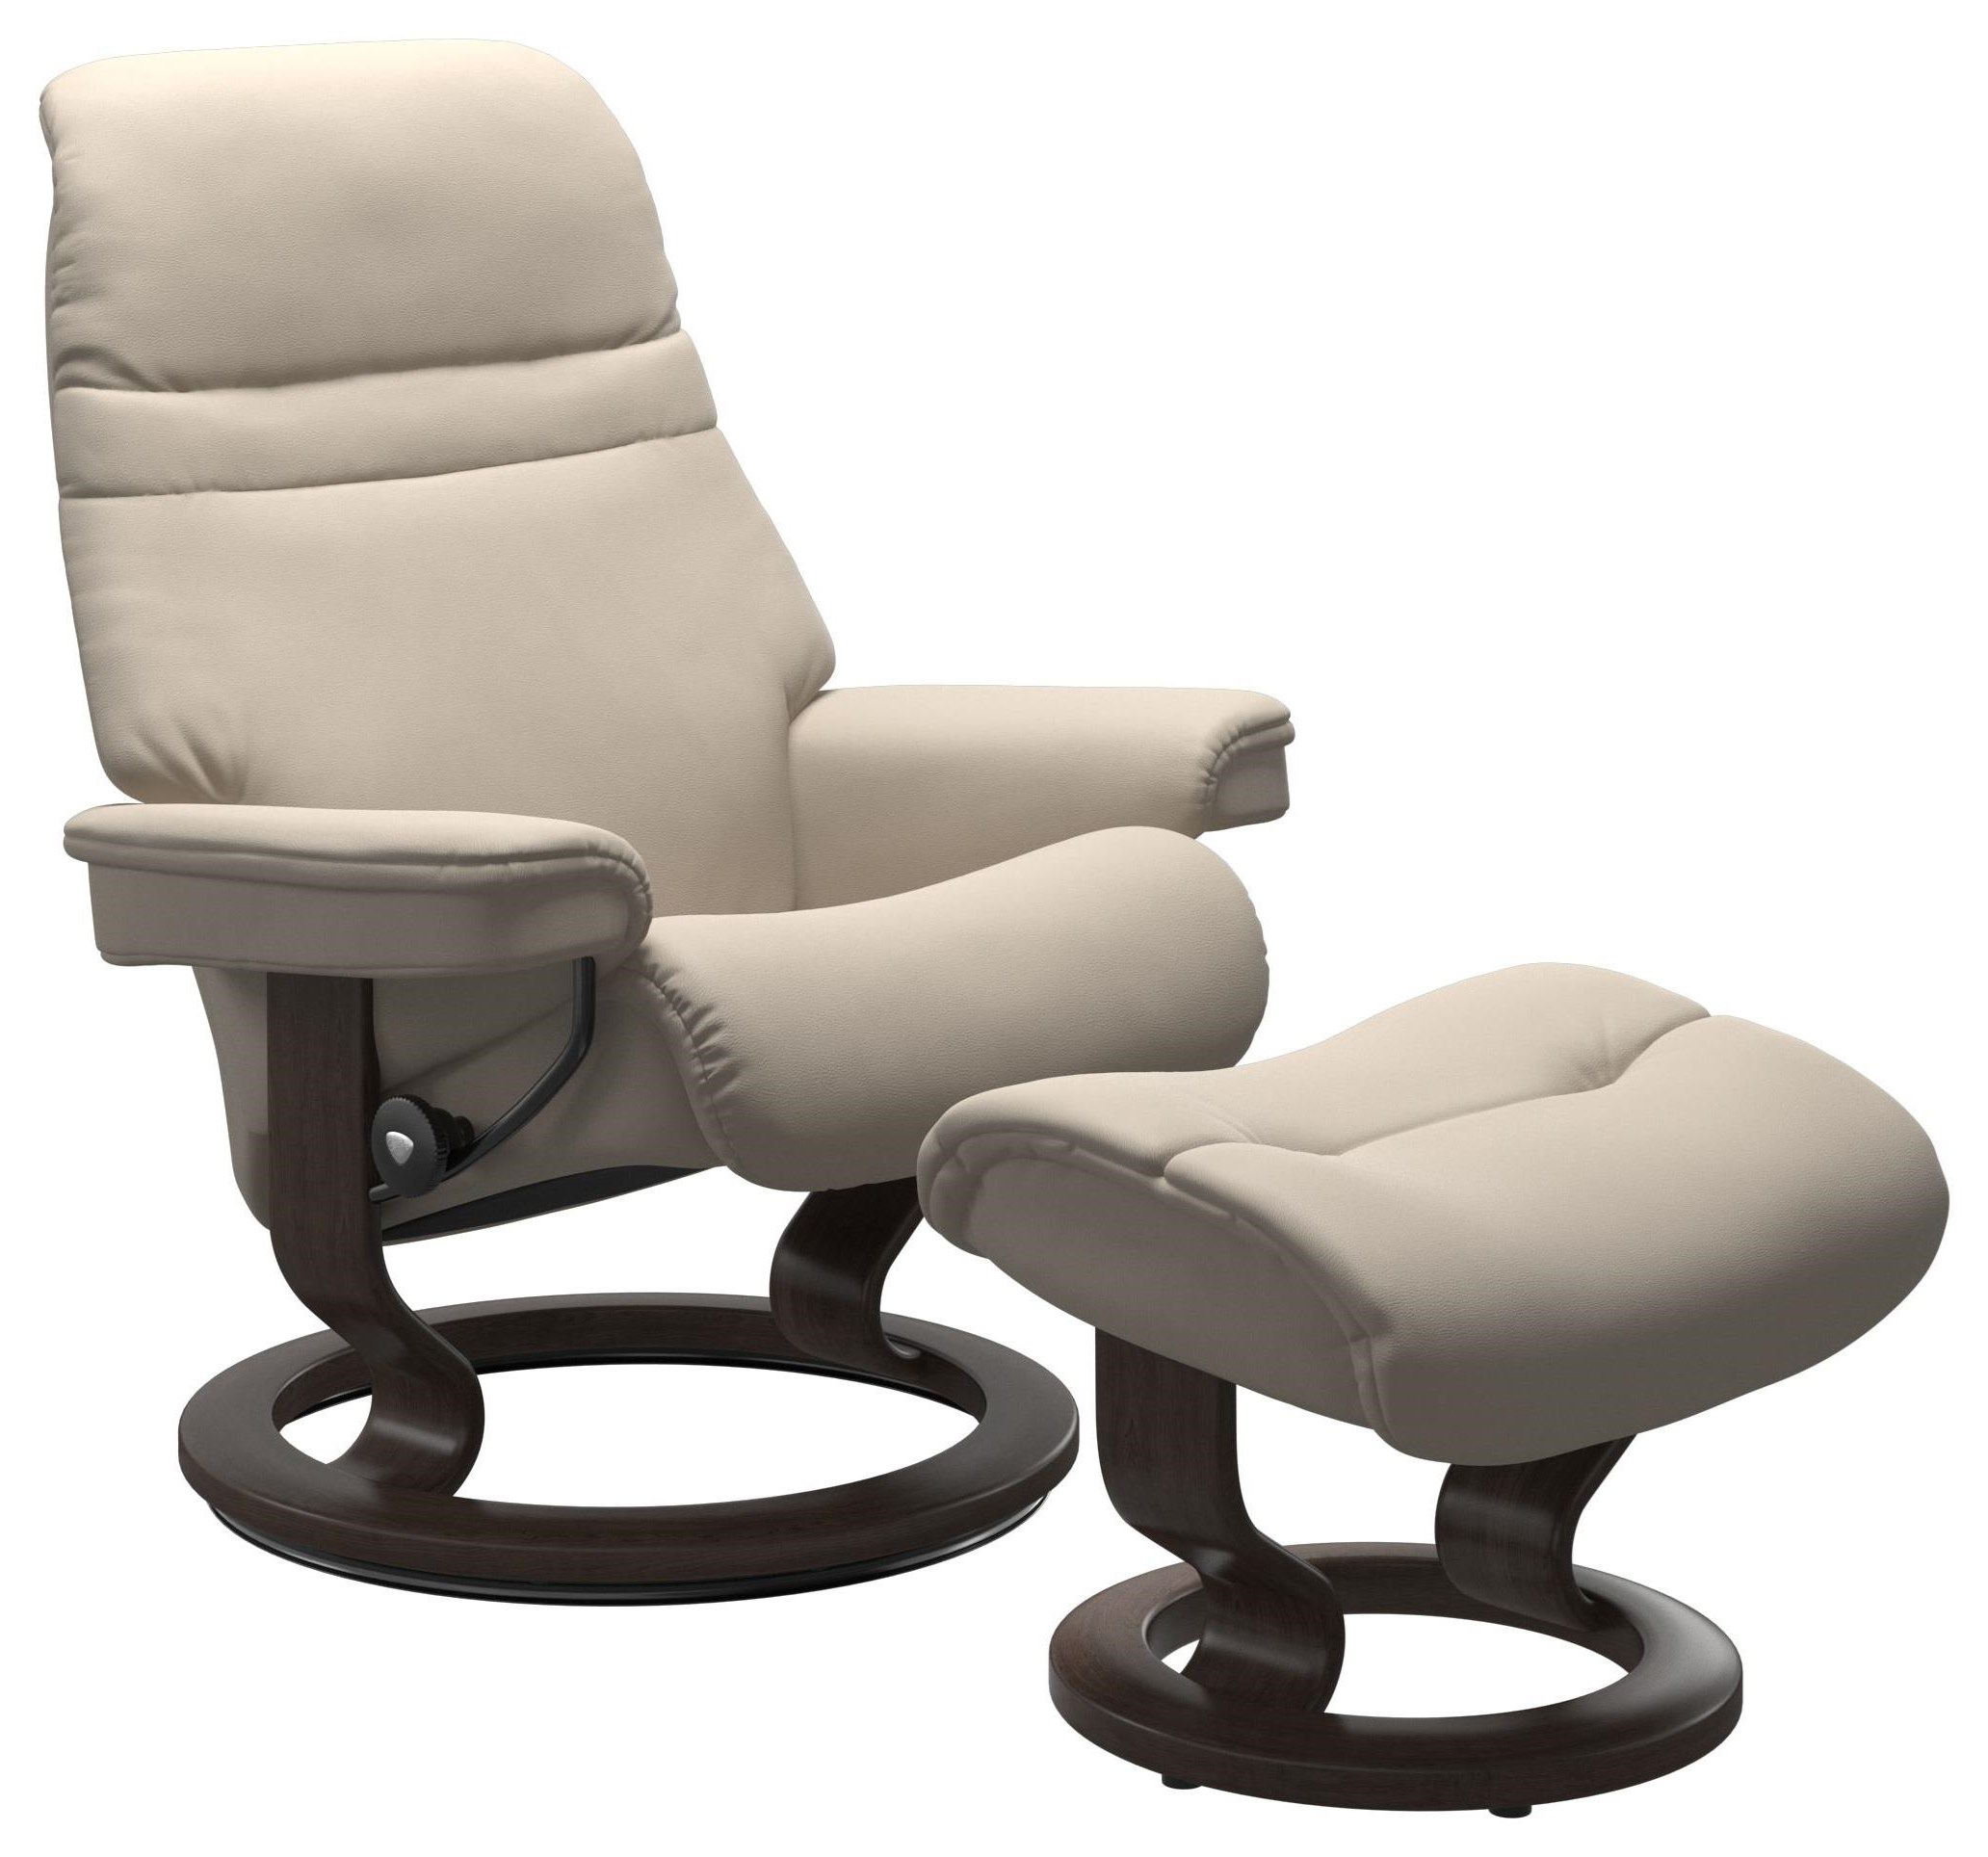 Sunrise Small Chair & Ottoman with Classic Base by Stressless at Bennett's Furniture and Mattresses